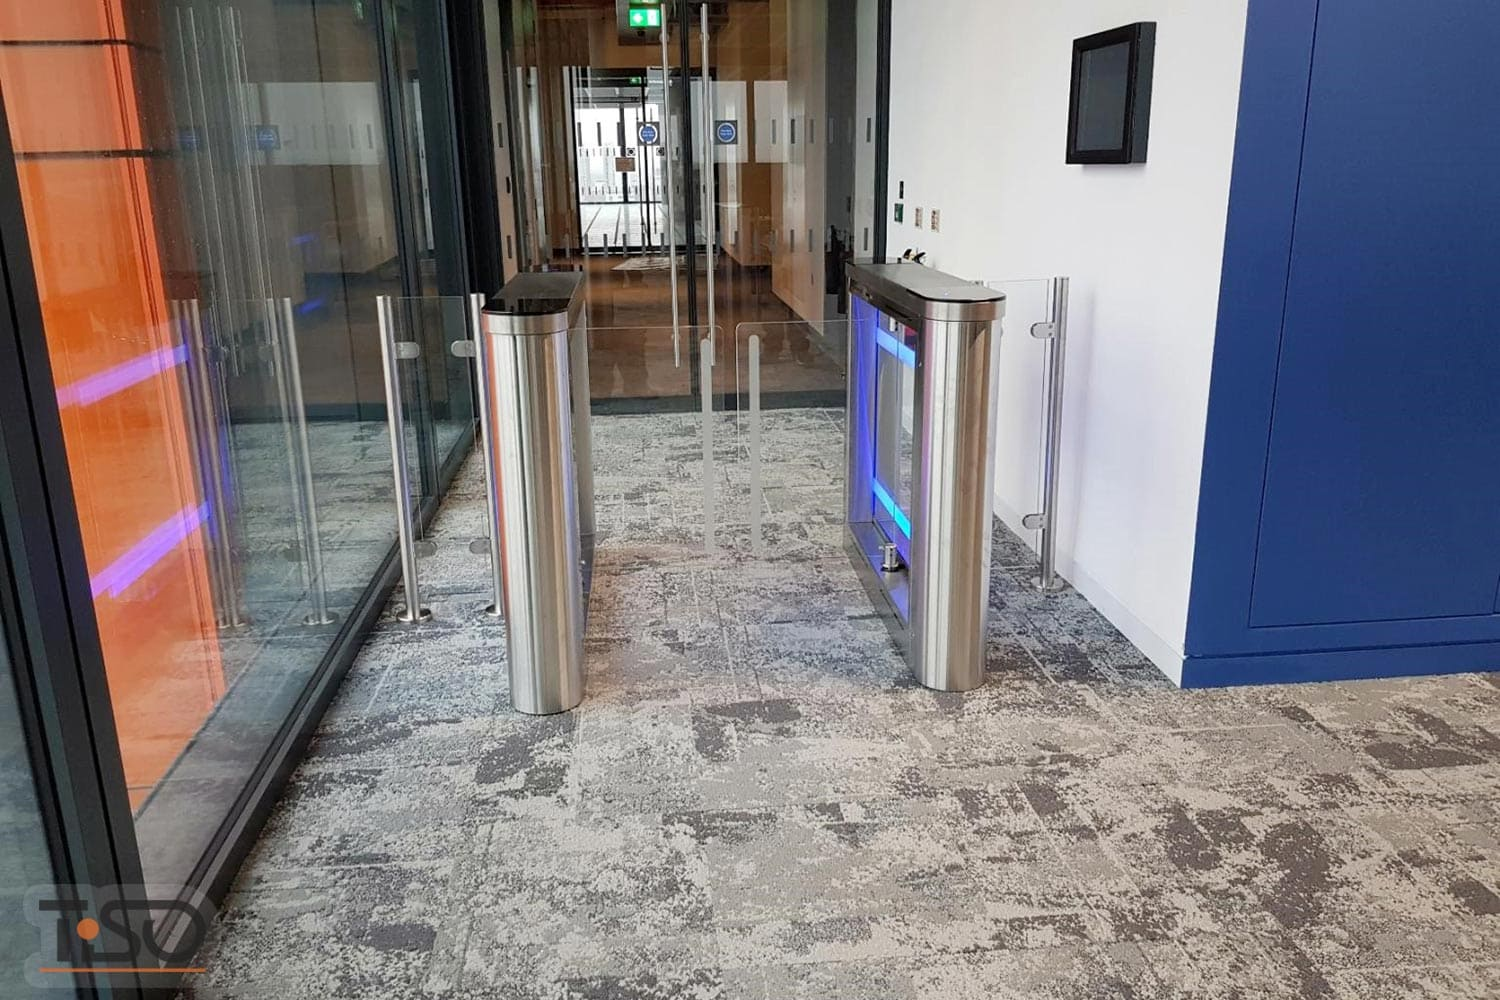 Sweeper and Glass enclosures, Office center, Maidstone, United Kingdom